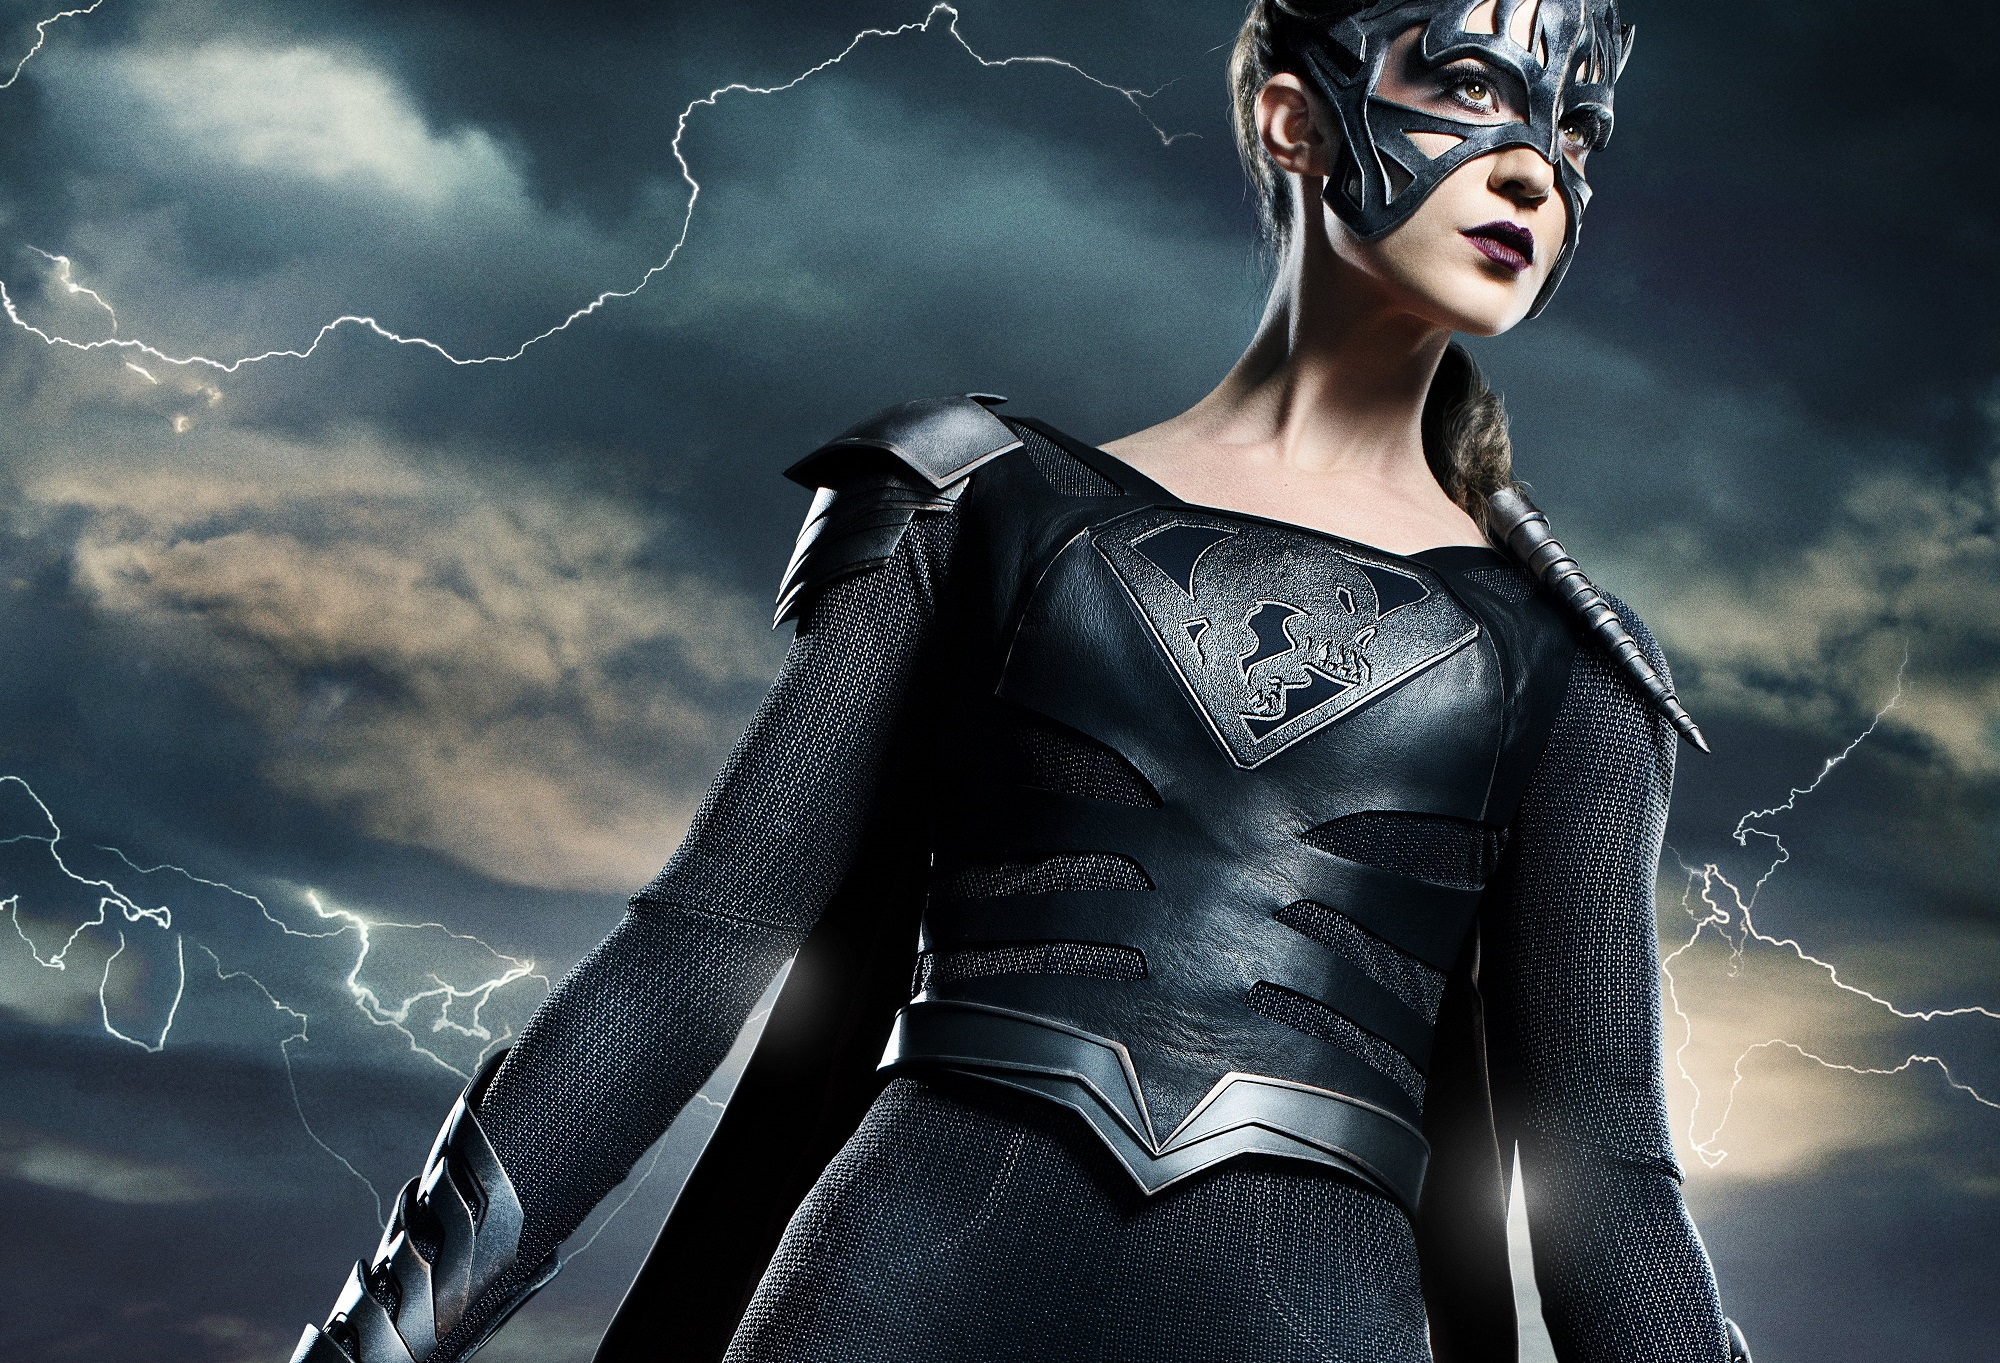 Supergirl: Who is Reign and What Does She Want? | DC